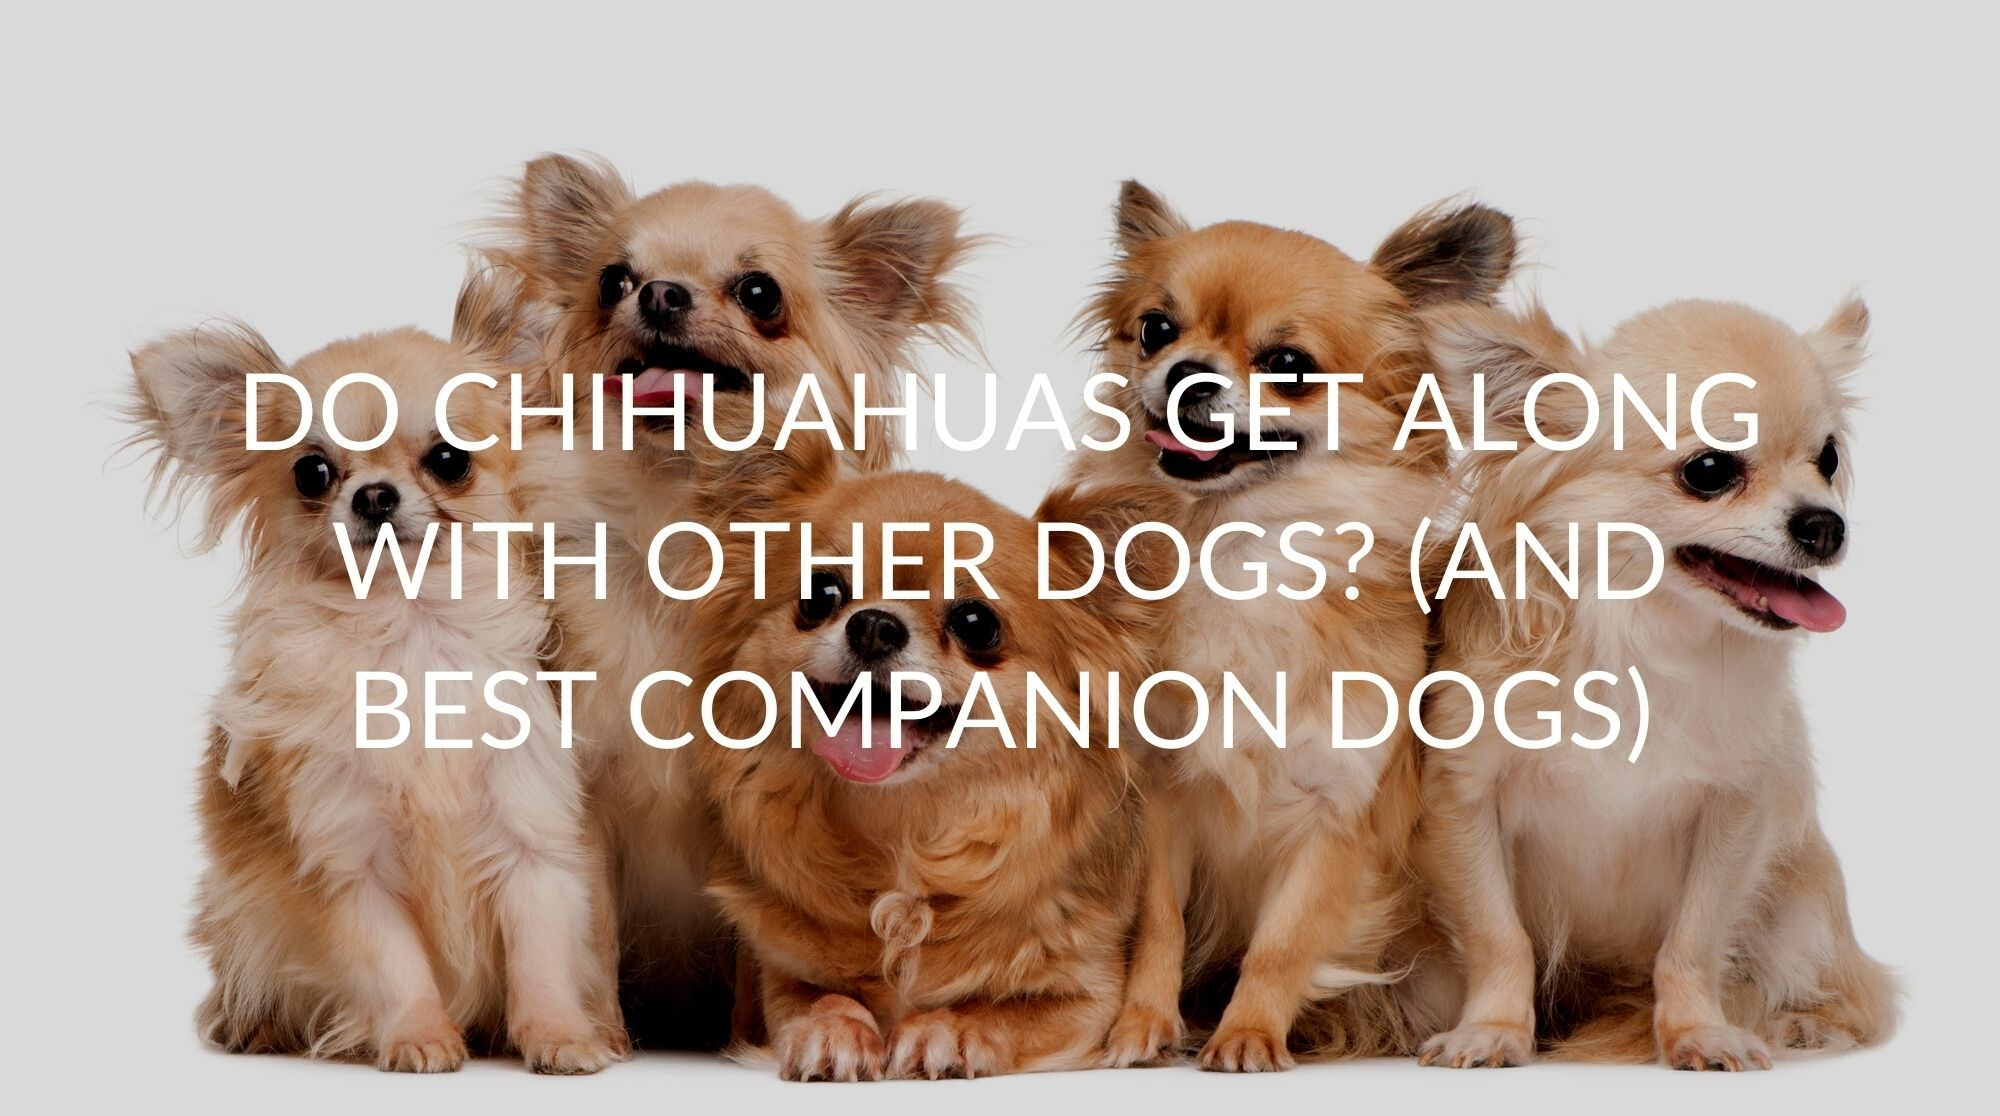 Do Chihuahuas Get Along With Other Dogs? (And Best Companion Dogs)